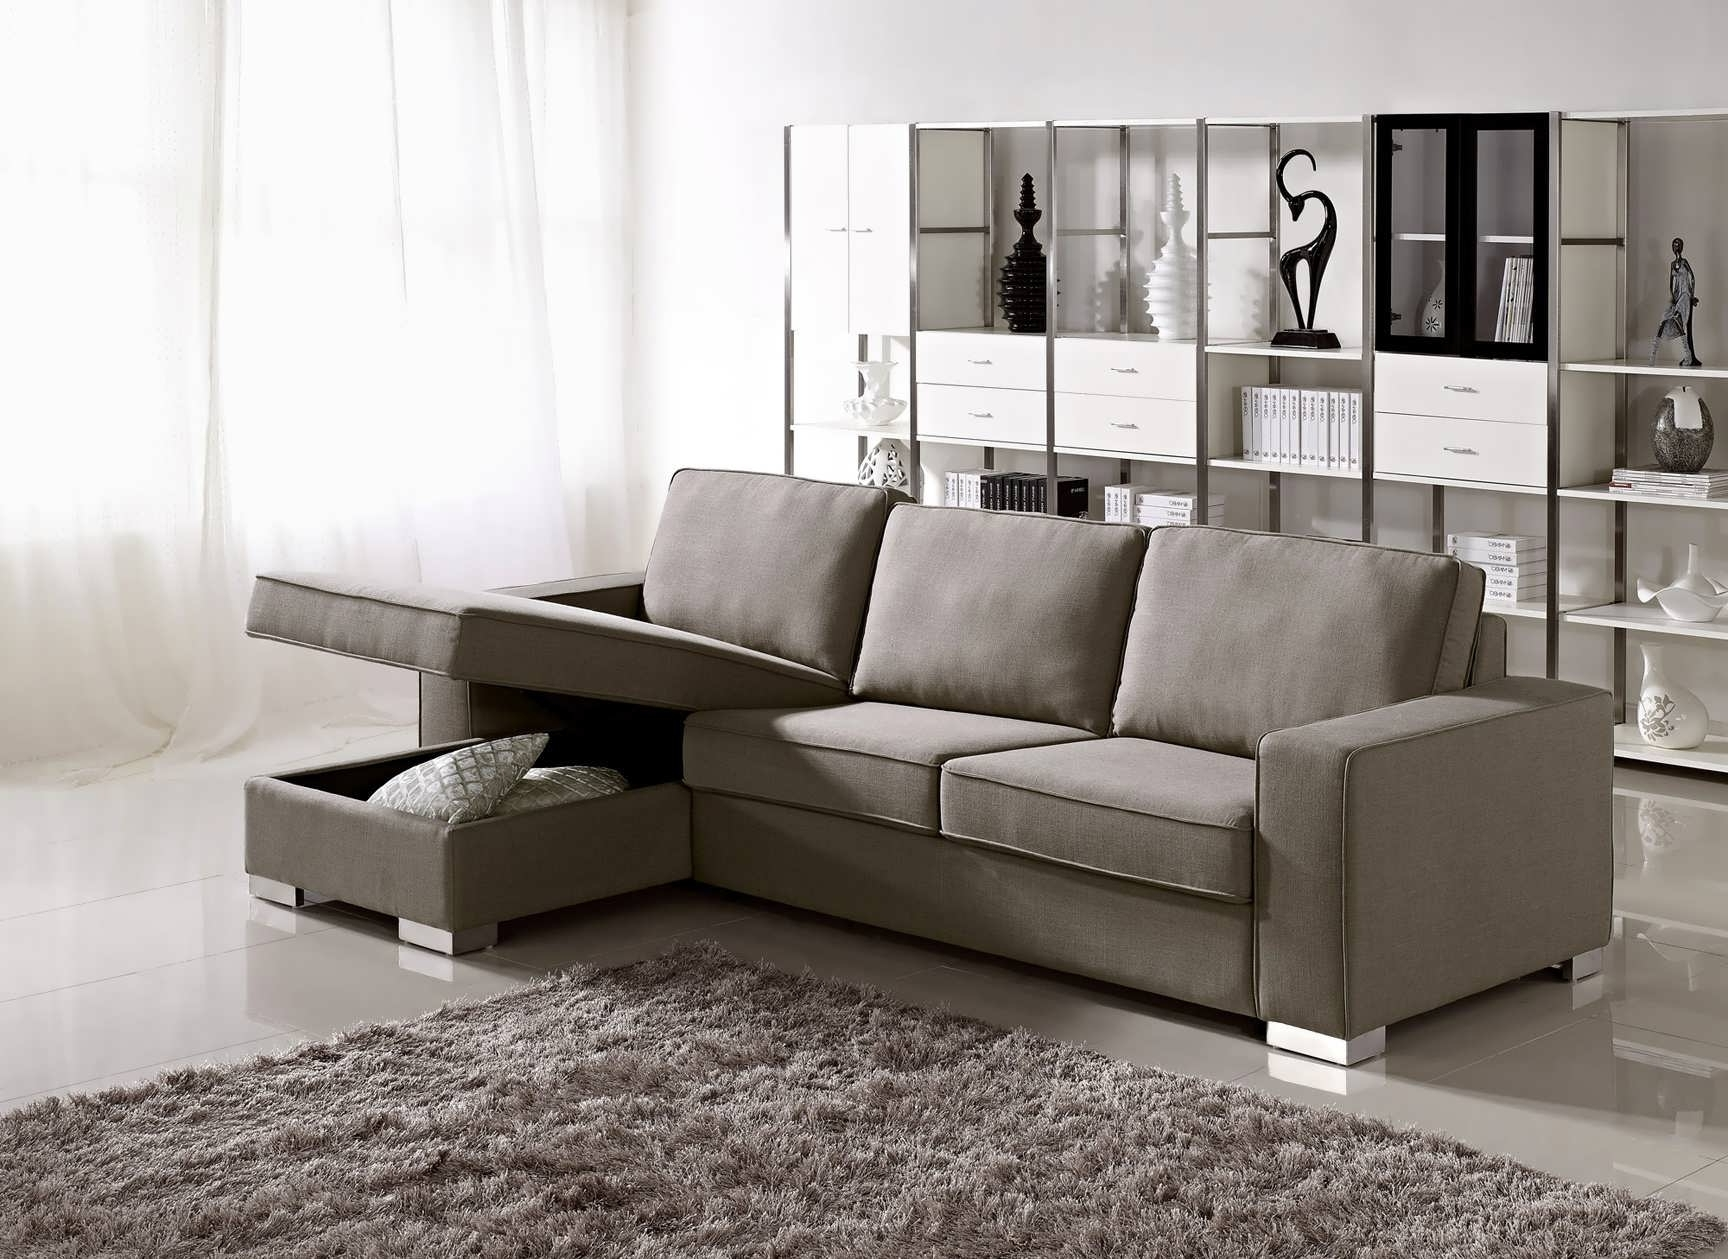 Sofa : Chaise Sofa Double Chaise Sectional Small L Shaped Couch Inside Popular Double Chaise Sectionals (View 10 of 15)